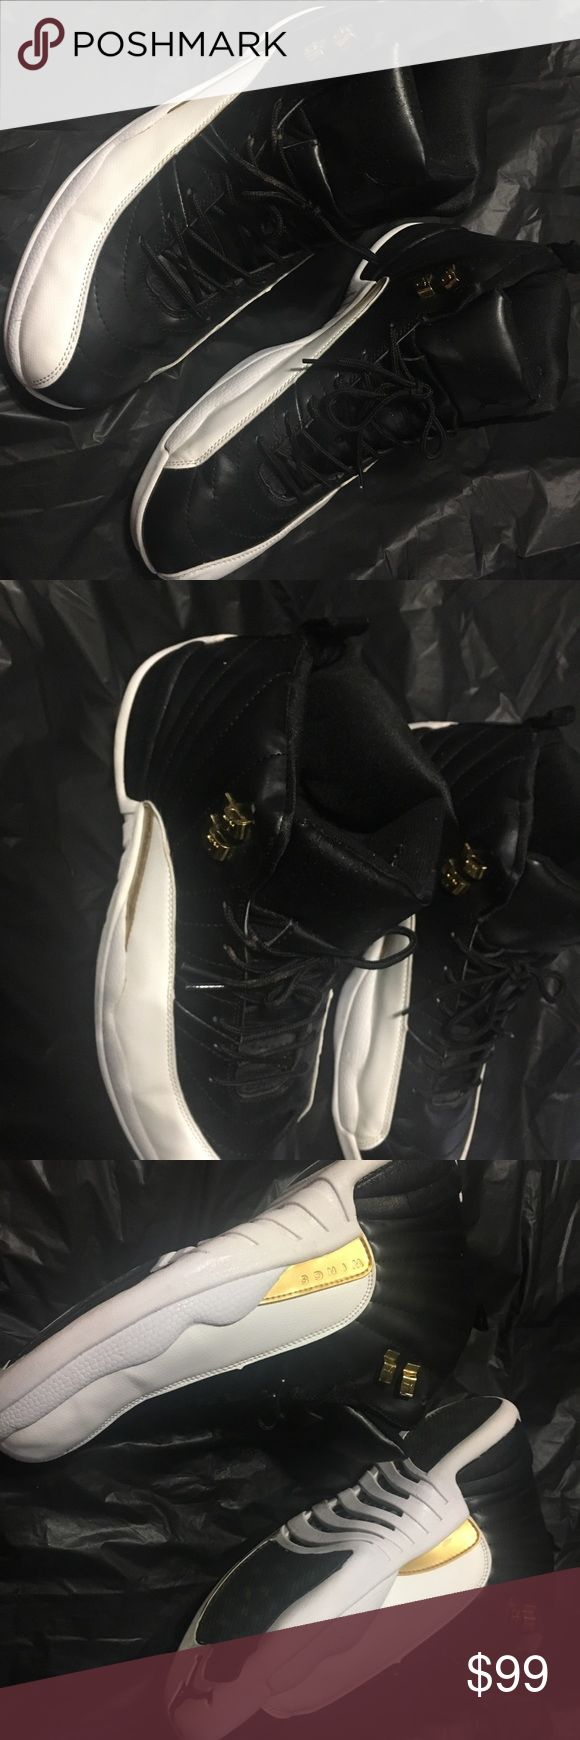 "Mens Sz 13 JORDAN RETRO 12 ""WINGS"" TENNIS SHOES GREAT USED CONDITION ‼️  Description: Purchased last Christmas  JORDAN RETRO 12 ""WINGS"" BLACK/WHITE/METALLIC GOLD  SOME WEAR NOTED ON SOLES-STILL HAVE ALOT OF LIFE LEFT IN THEM‼️ SMOKE FREE HOME ‼️ Air Jordan Shoes Athletic Shoes"